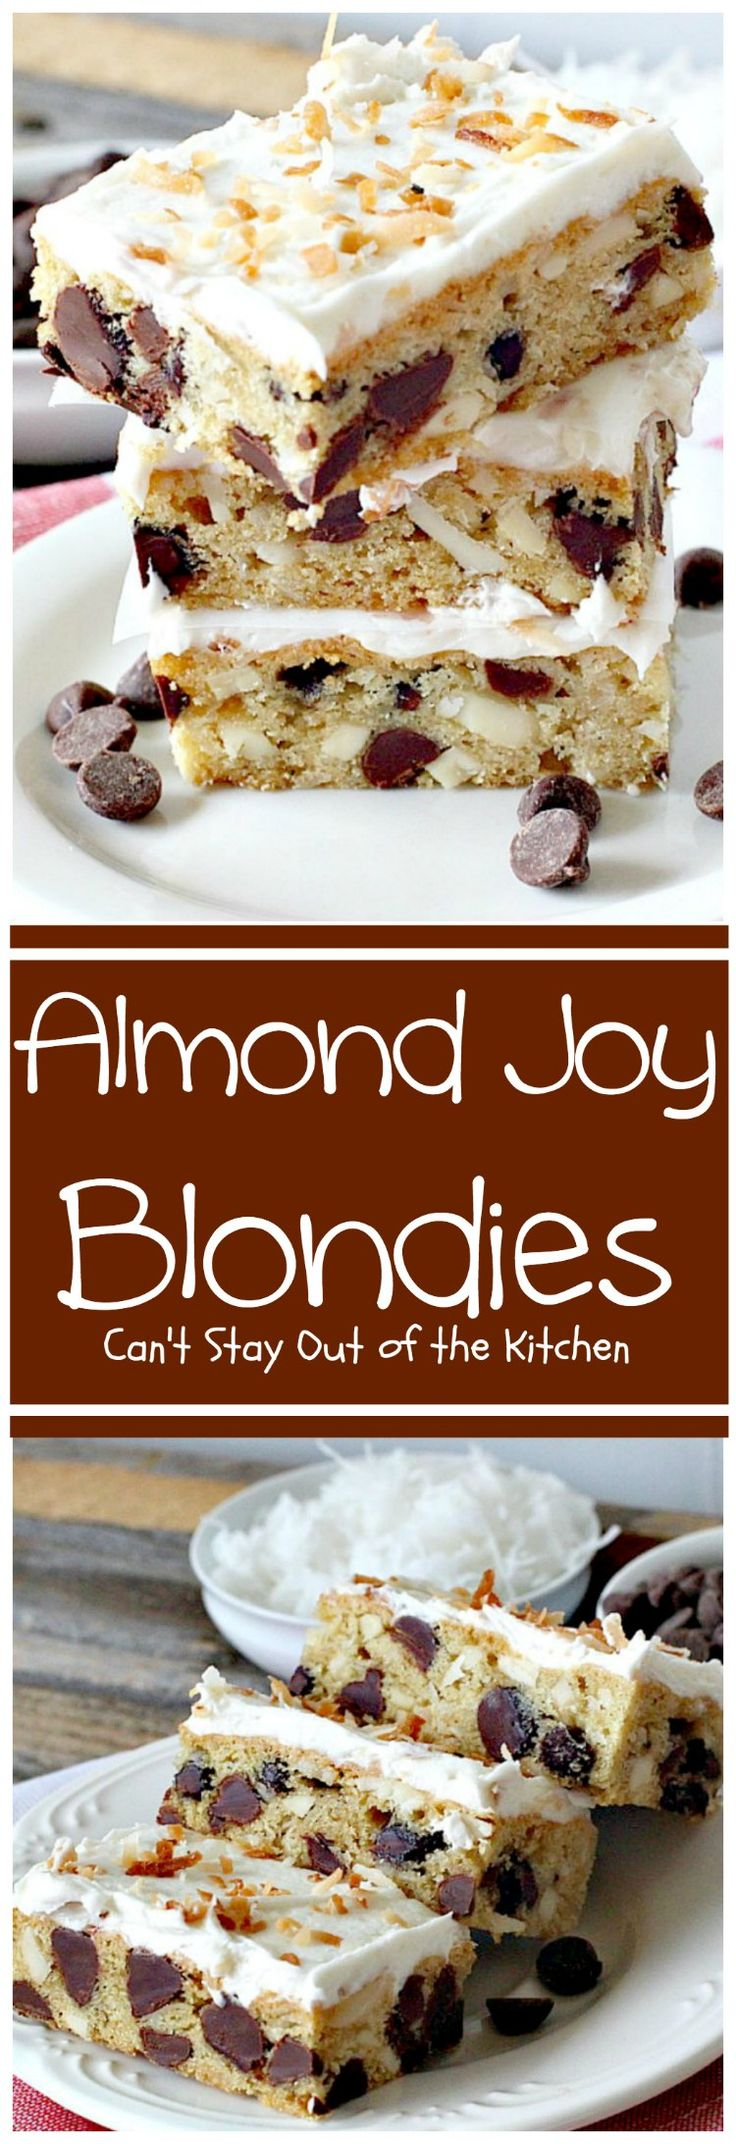 Almond Joy Blondies | These rich and decadent cookies are divine. Perfect dessert for any occasion. The icing is to die for!